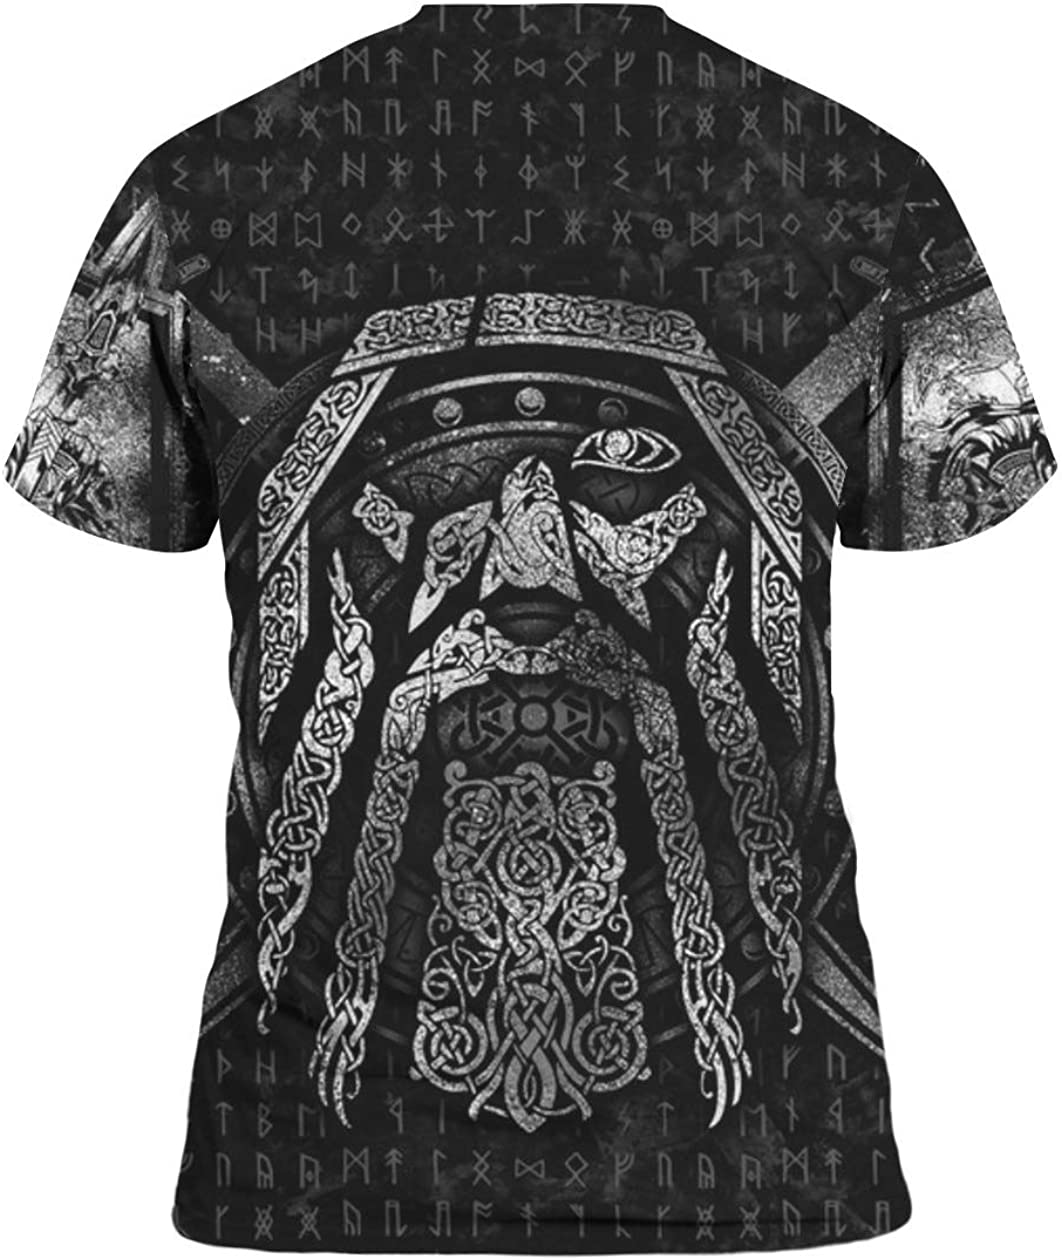 Viking Odin 3D All Over Sublimation Printing Shirt